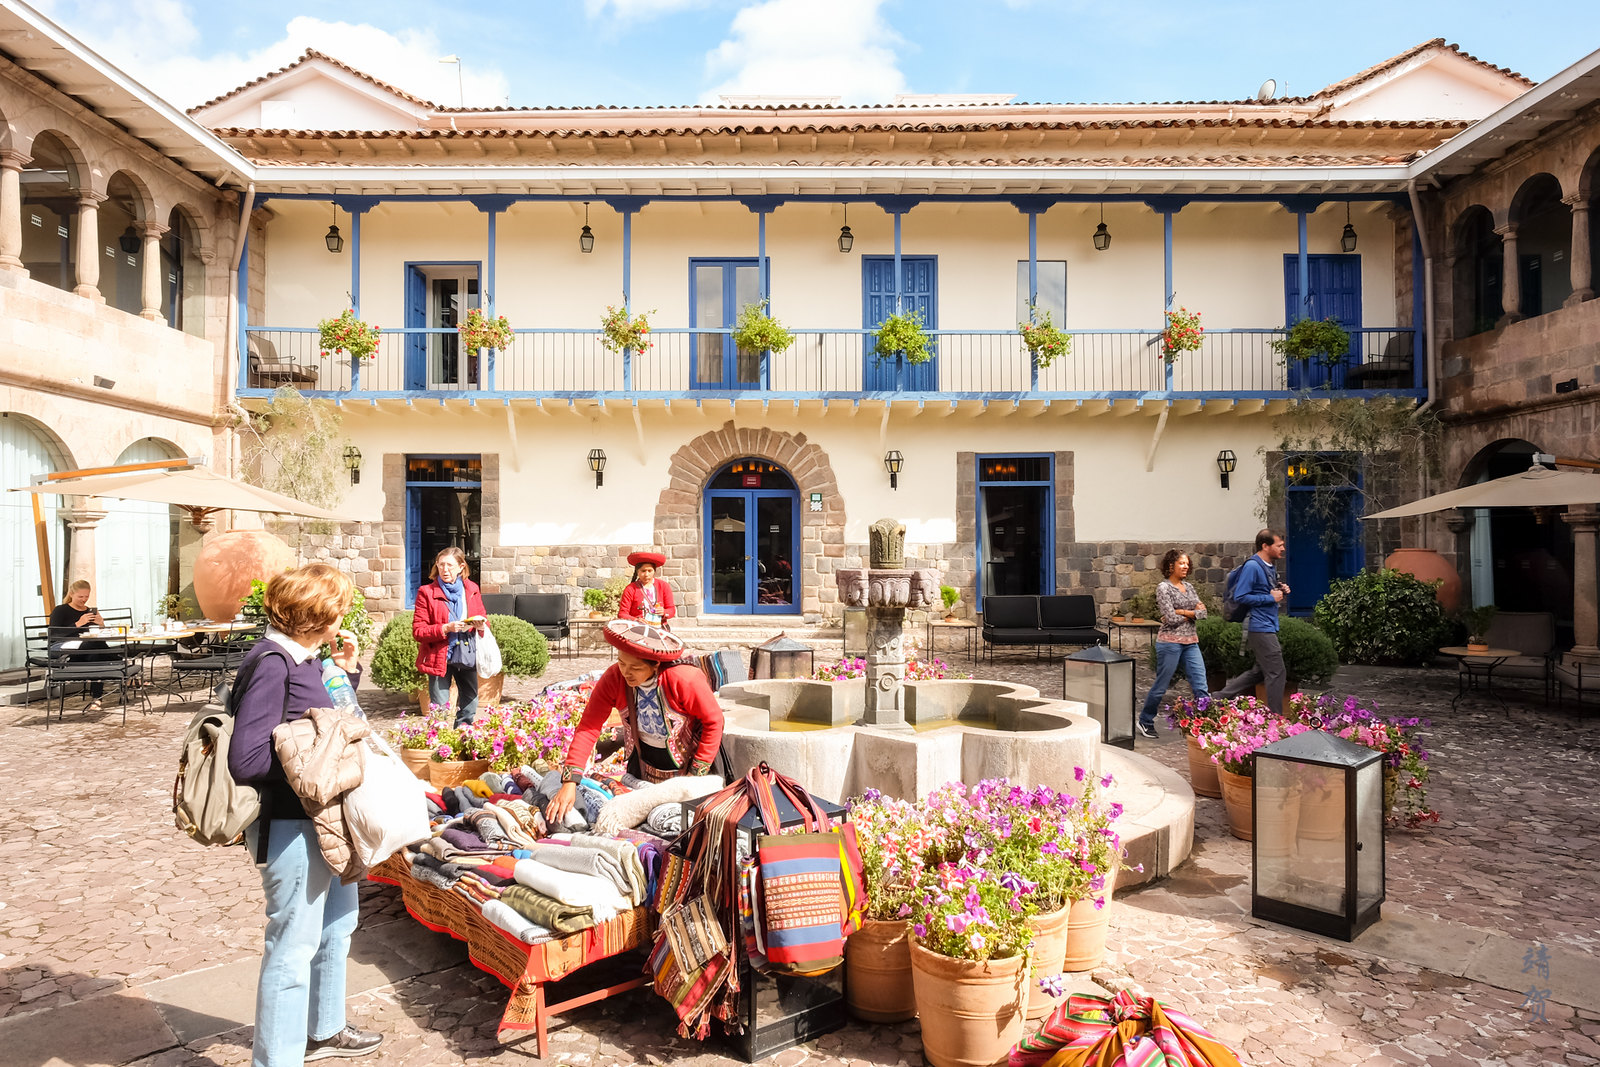 Local market at the Cuatro Bustos courtyard